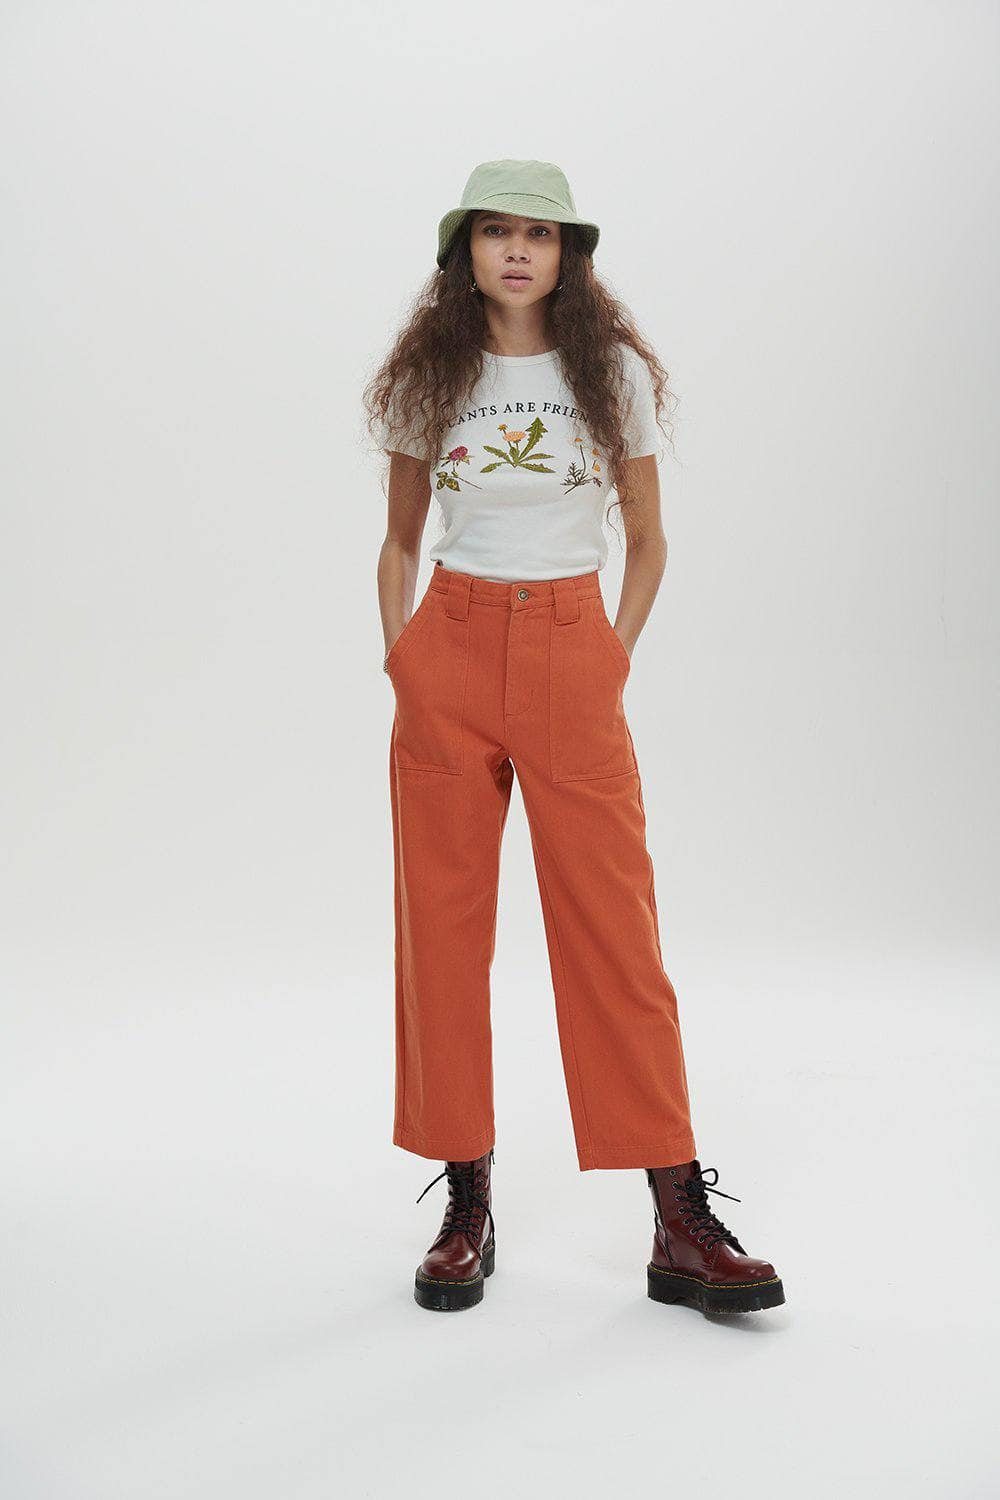 Lucy & Yak jeans 'Logan' High Rise Organic Jeans in Rust